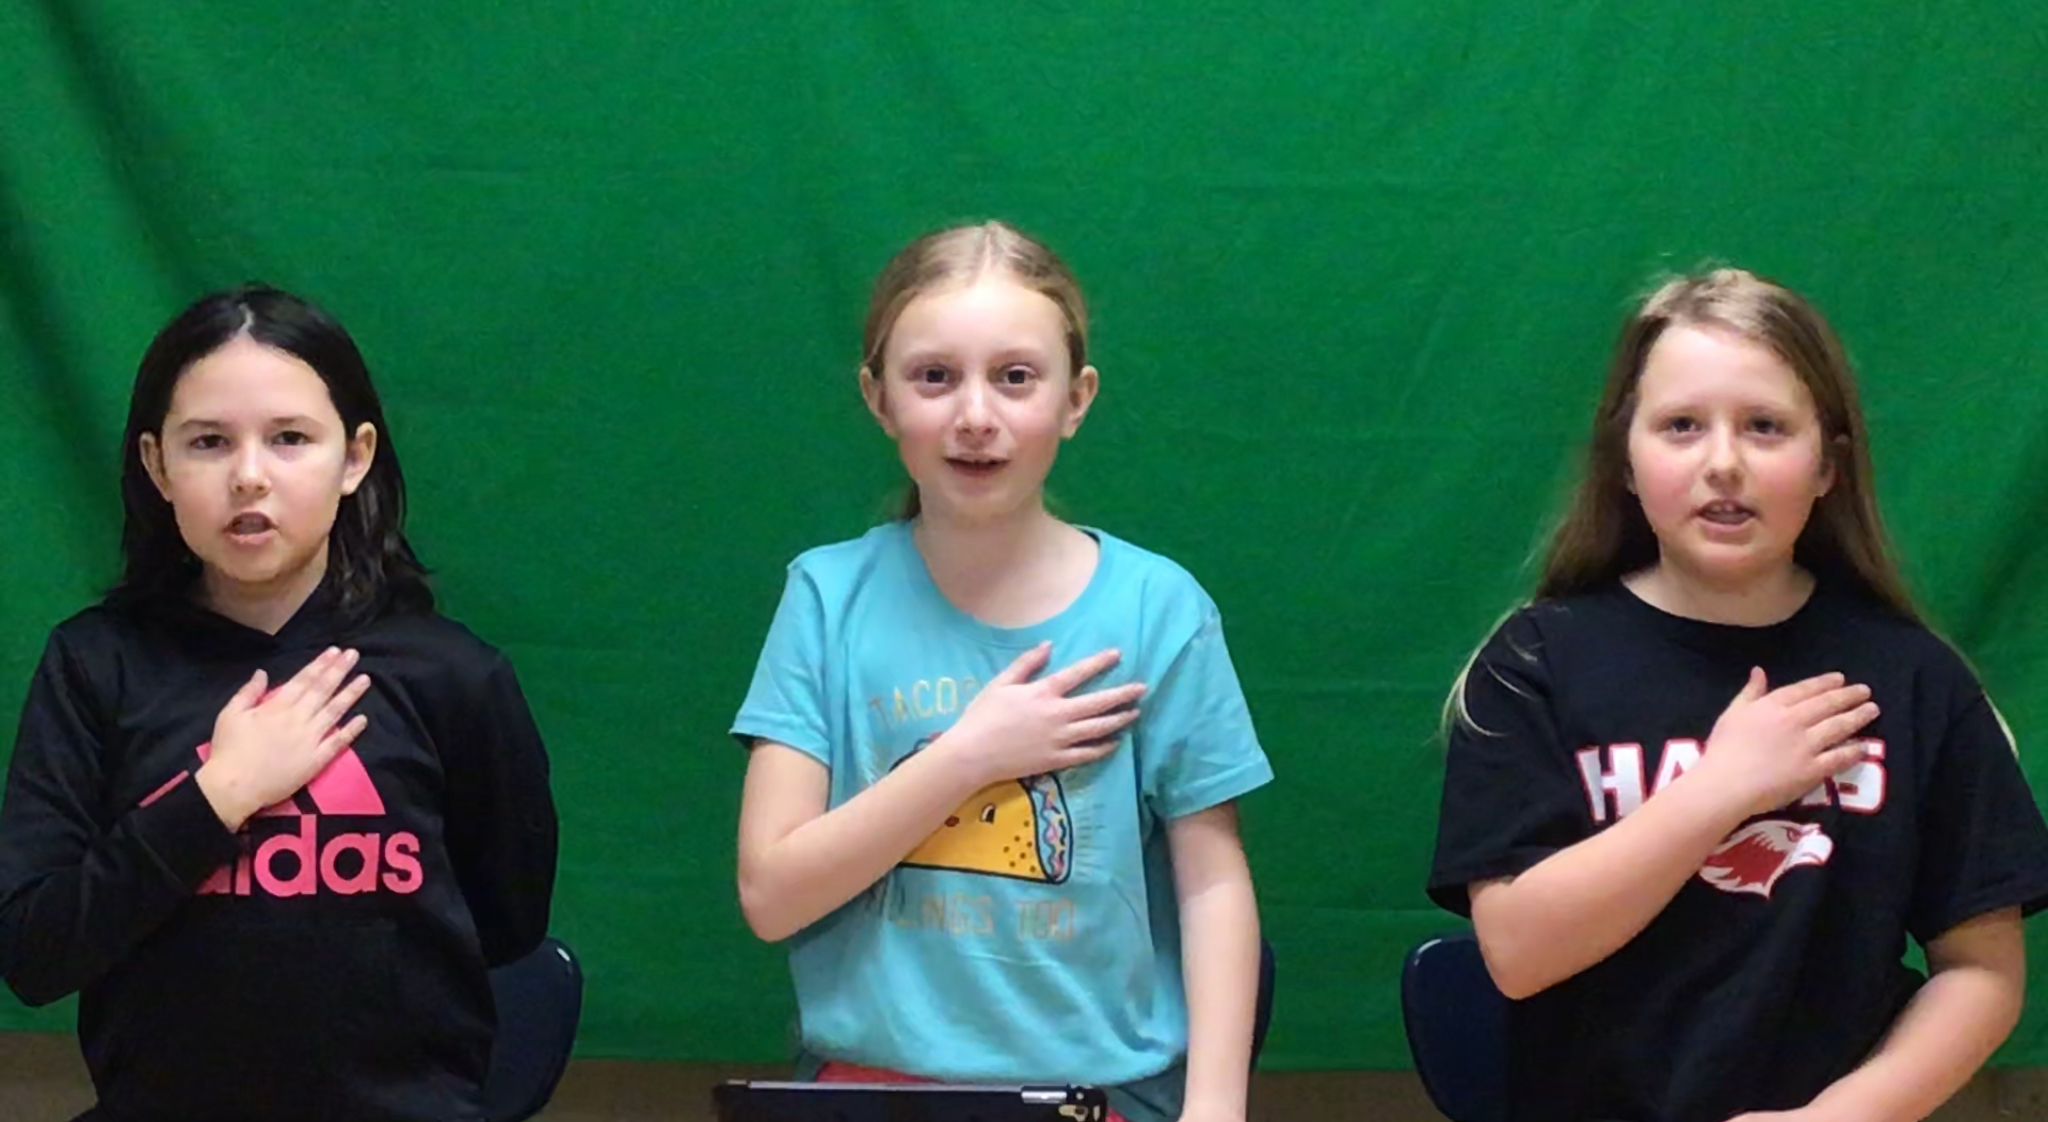 Students at Brener doing the pledge during the announcements.